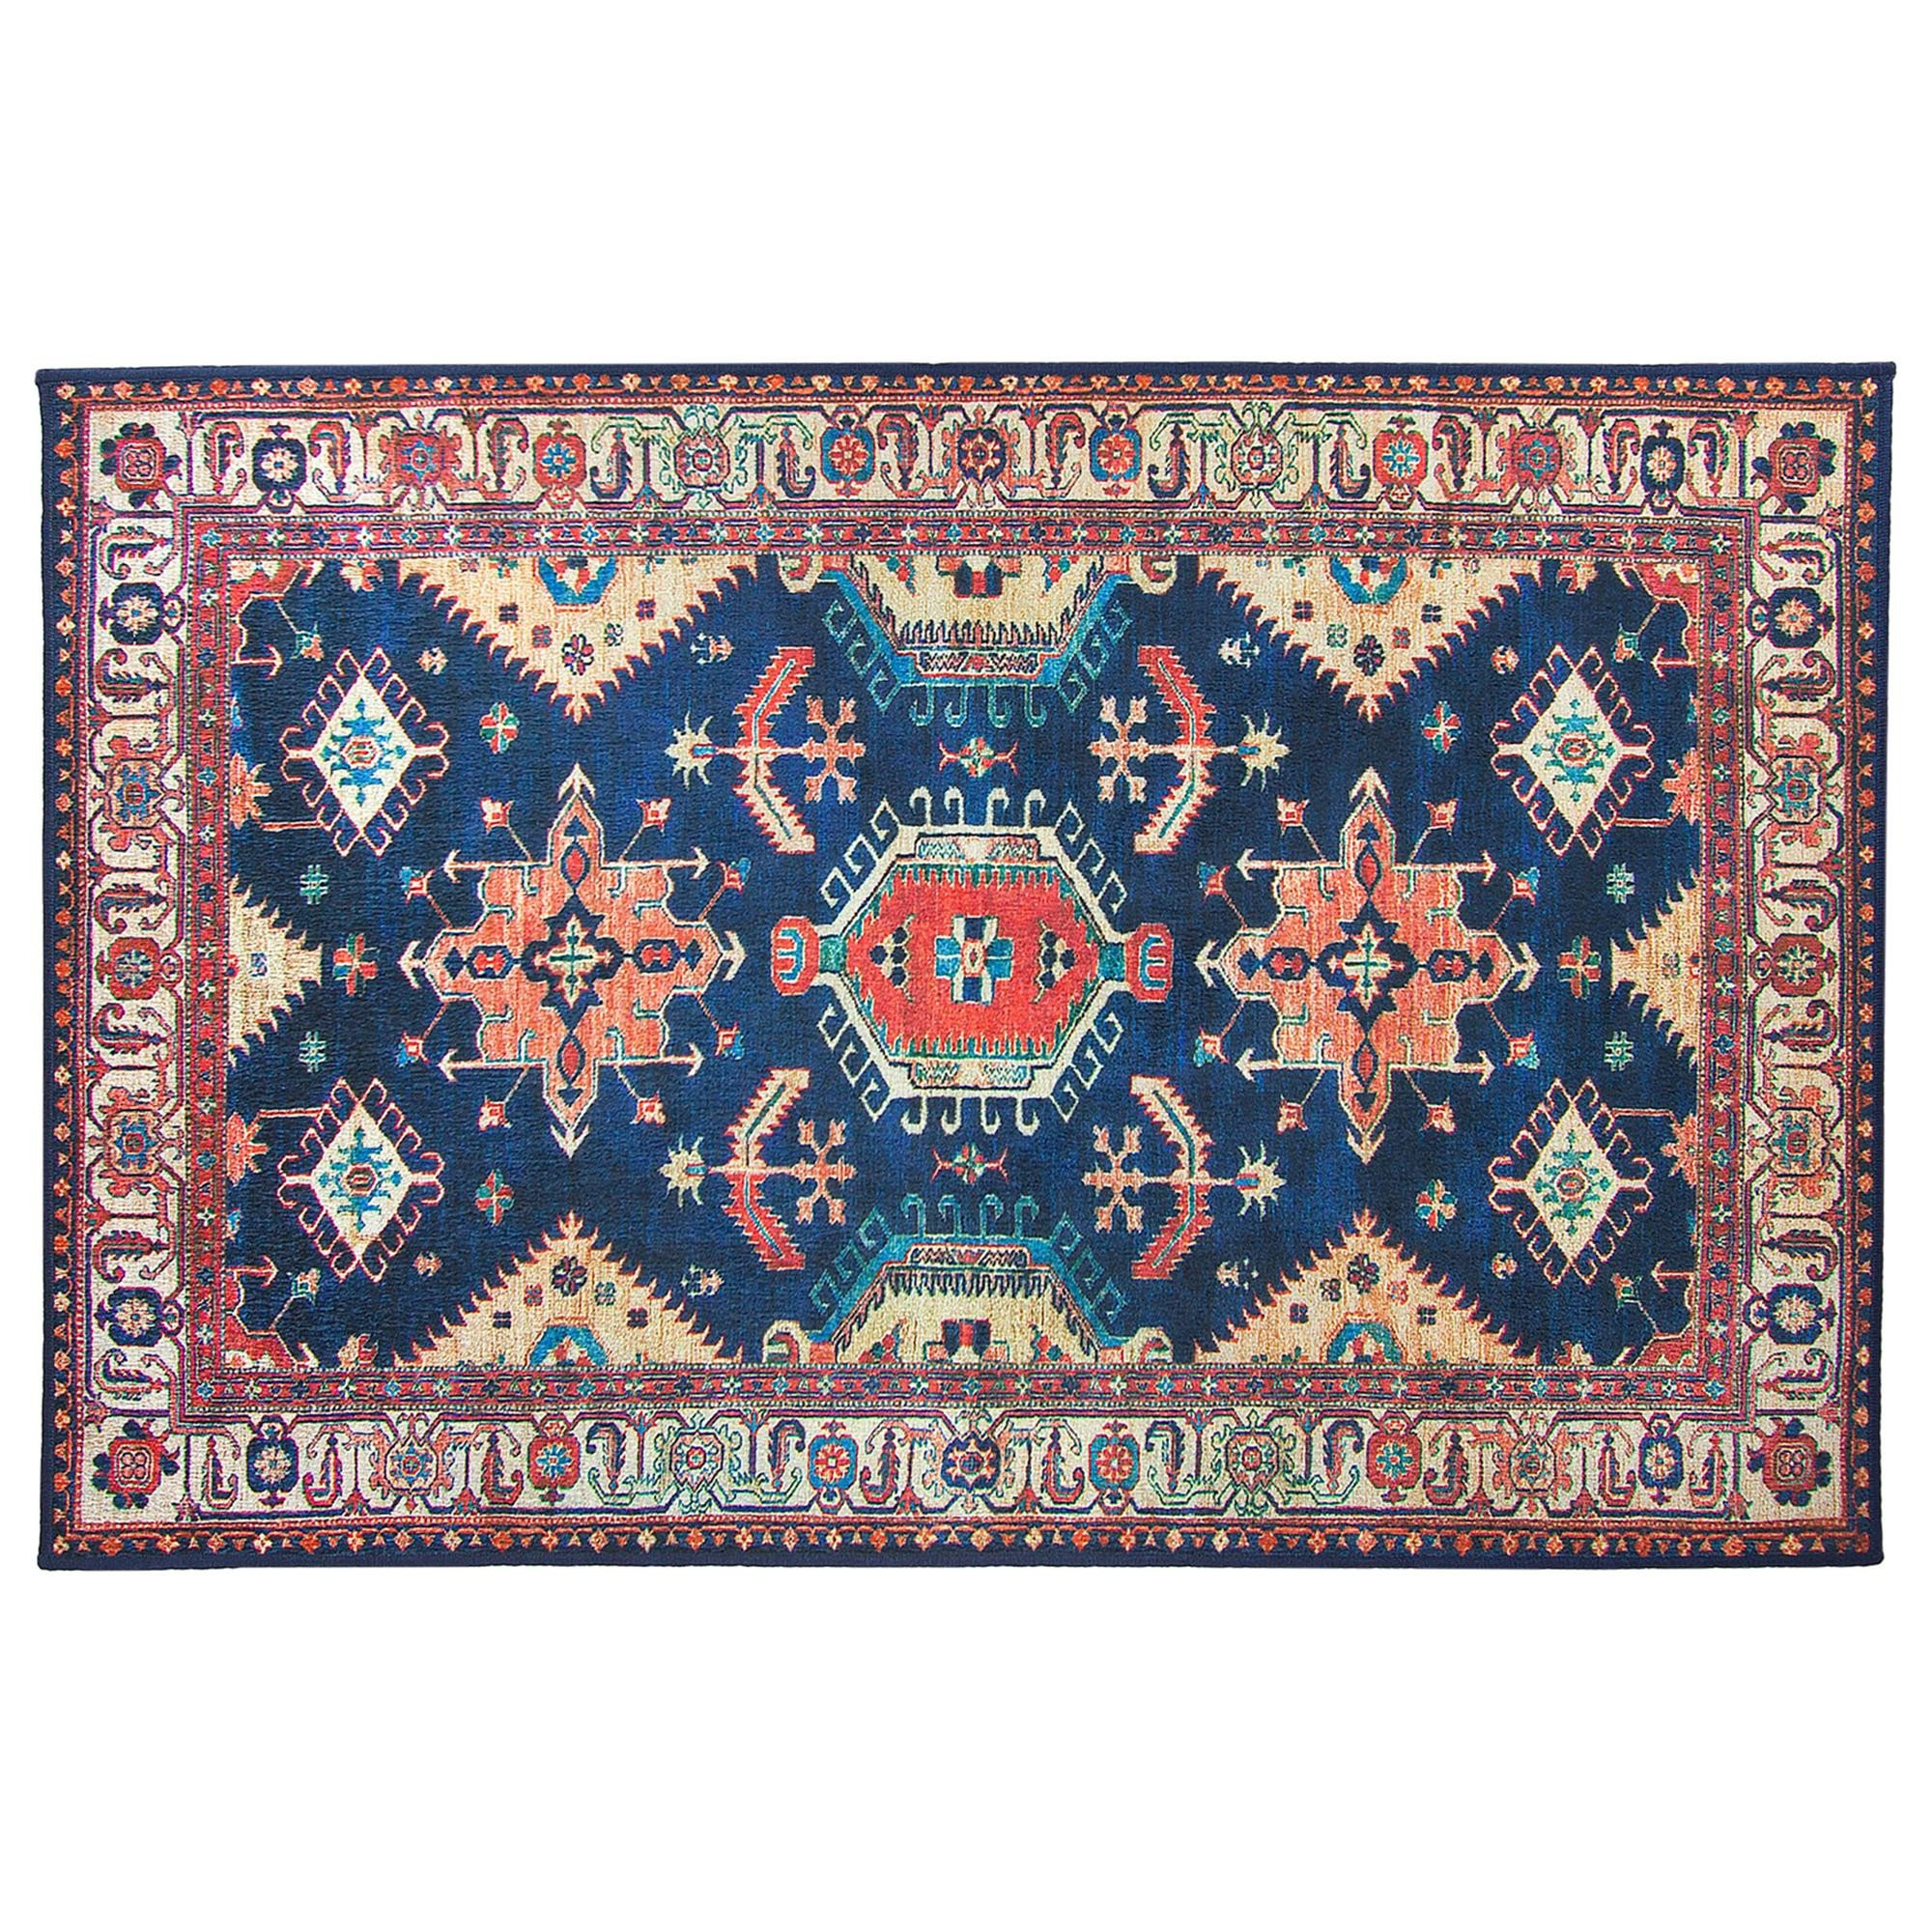 Girls Bedroom area Rugs Lovely Ruggable Noor 3 X 5 Sapphire area Rug